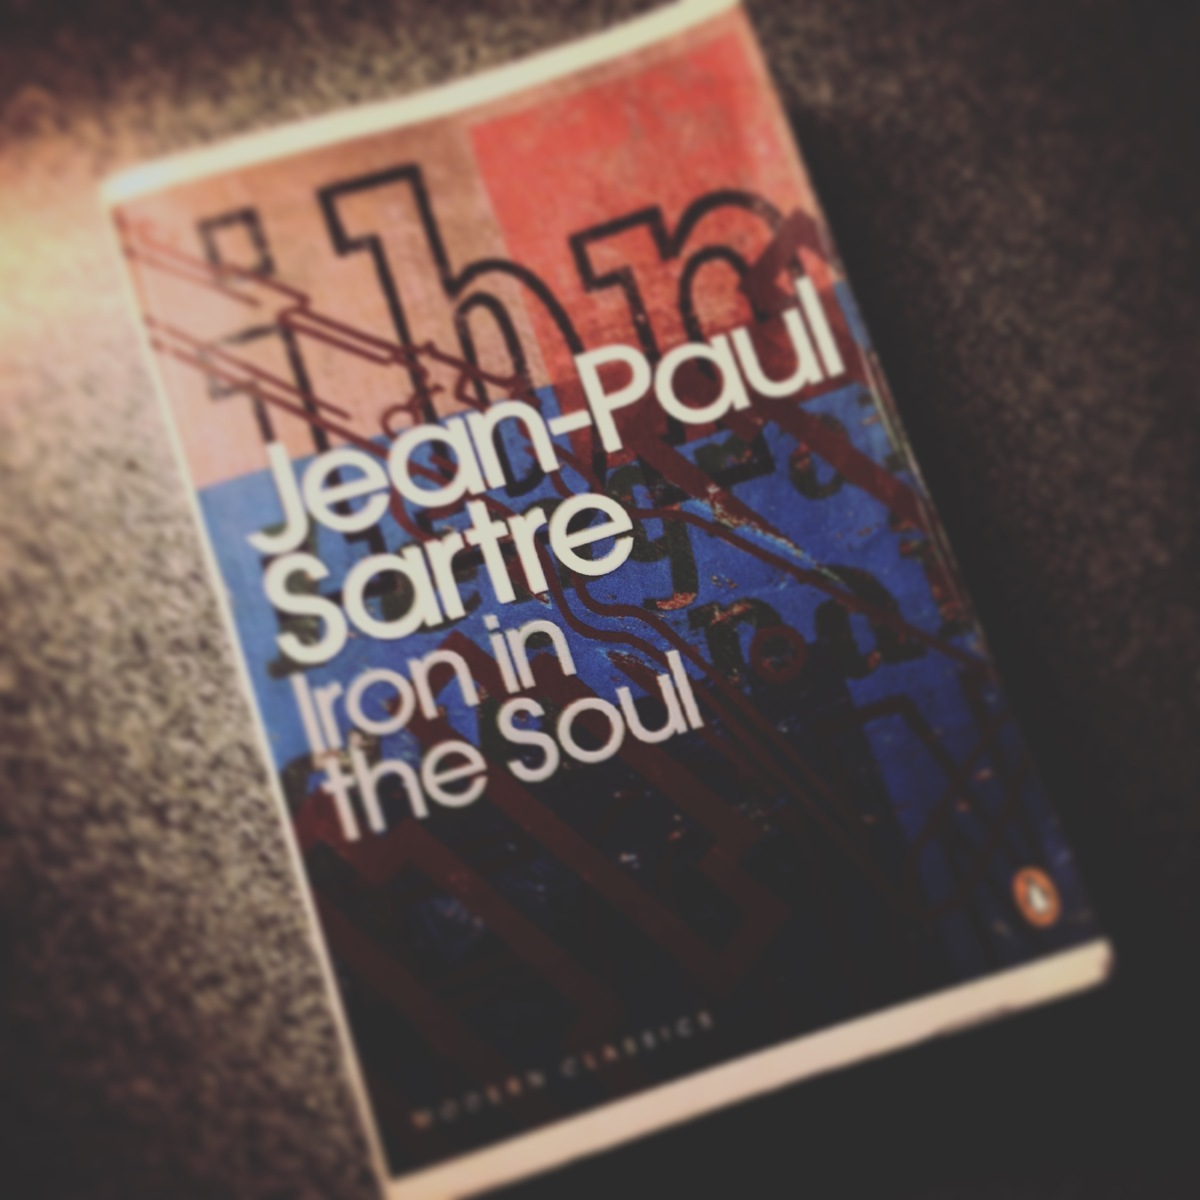 Book of da Week: Iron in the Soul by Jean-Paul Sartre